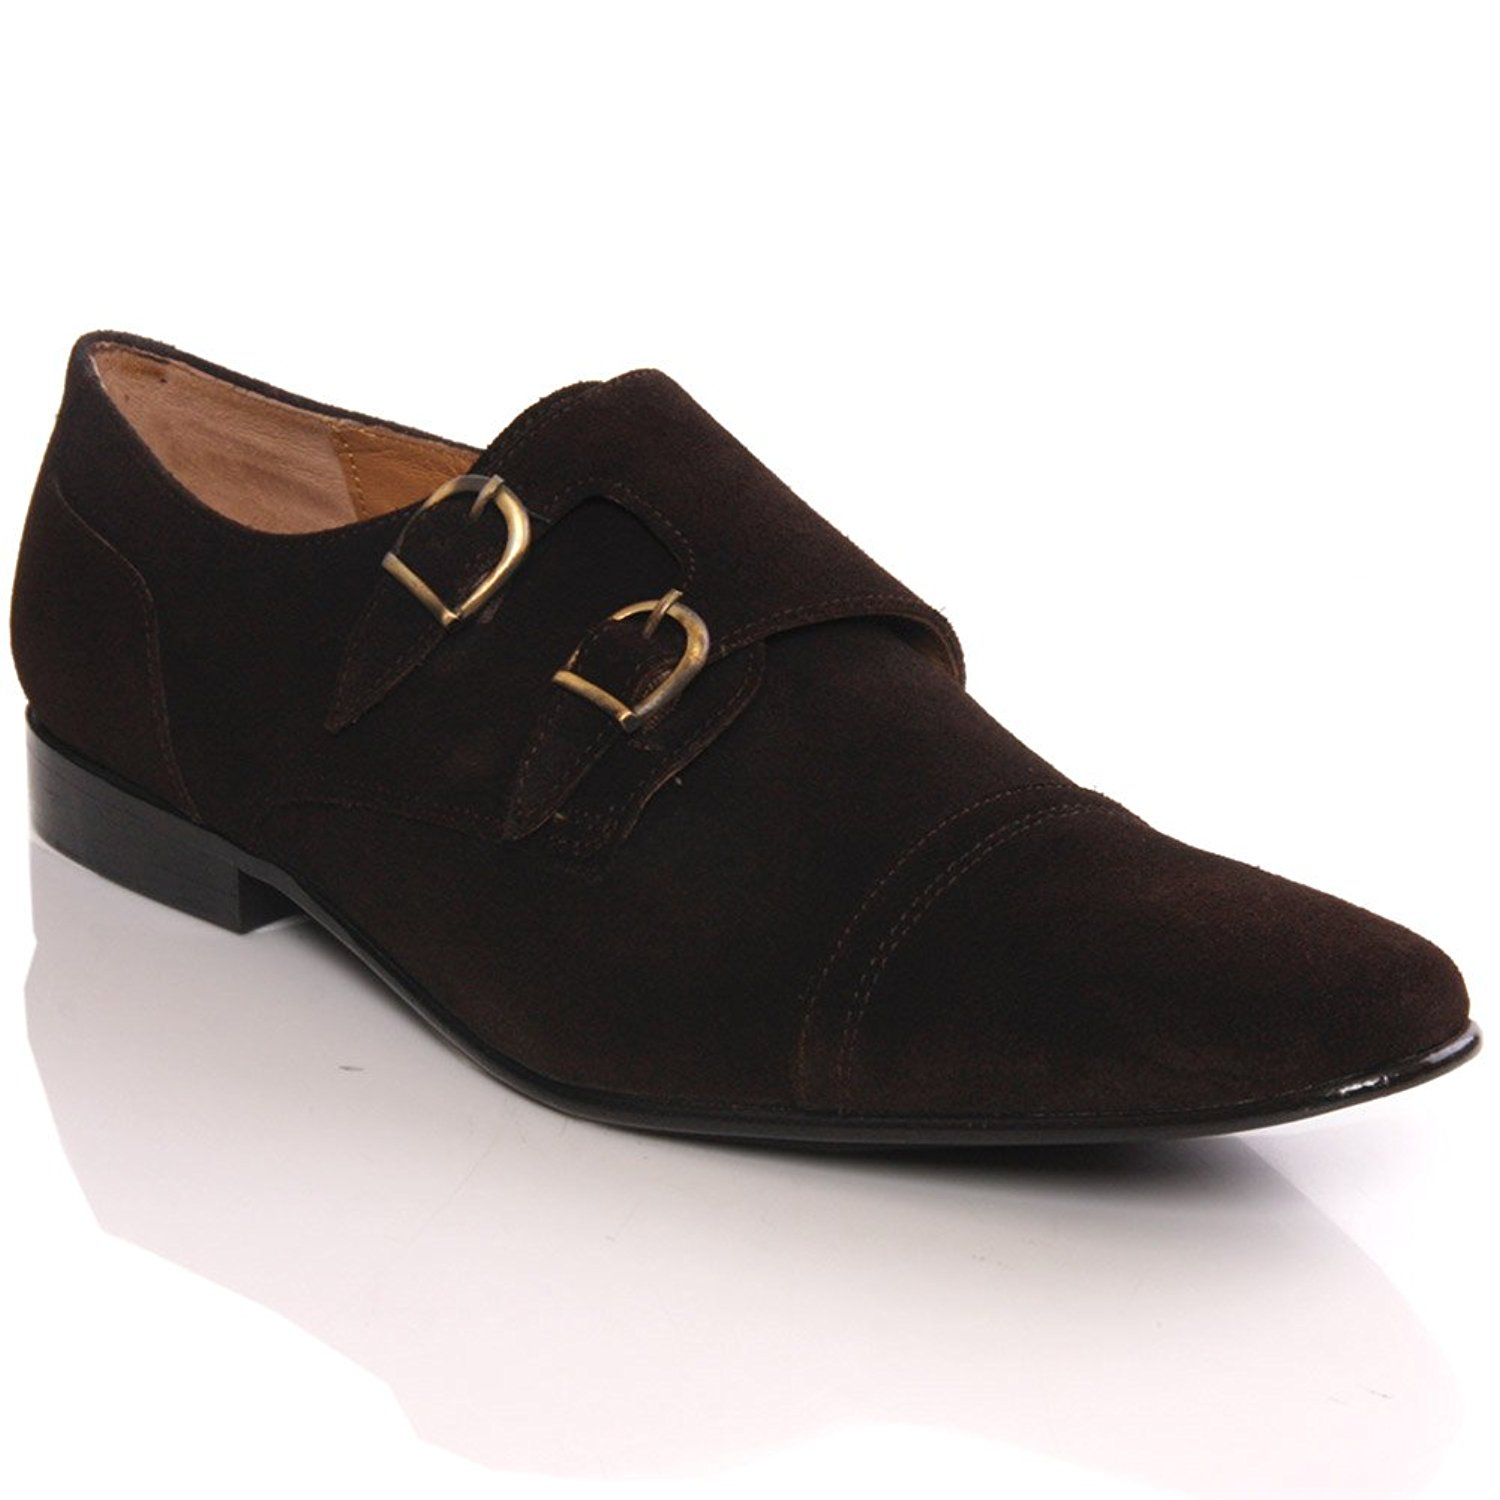 391746e9b647b Cheap spanish shoes, find spanish shoes deals on line at Alibaba.com